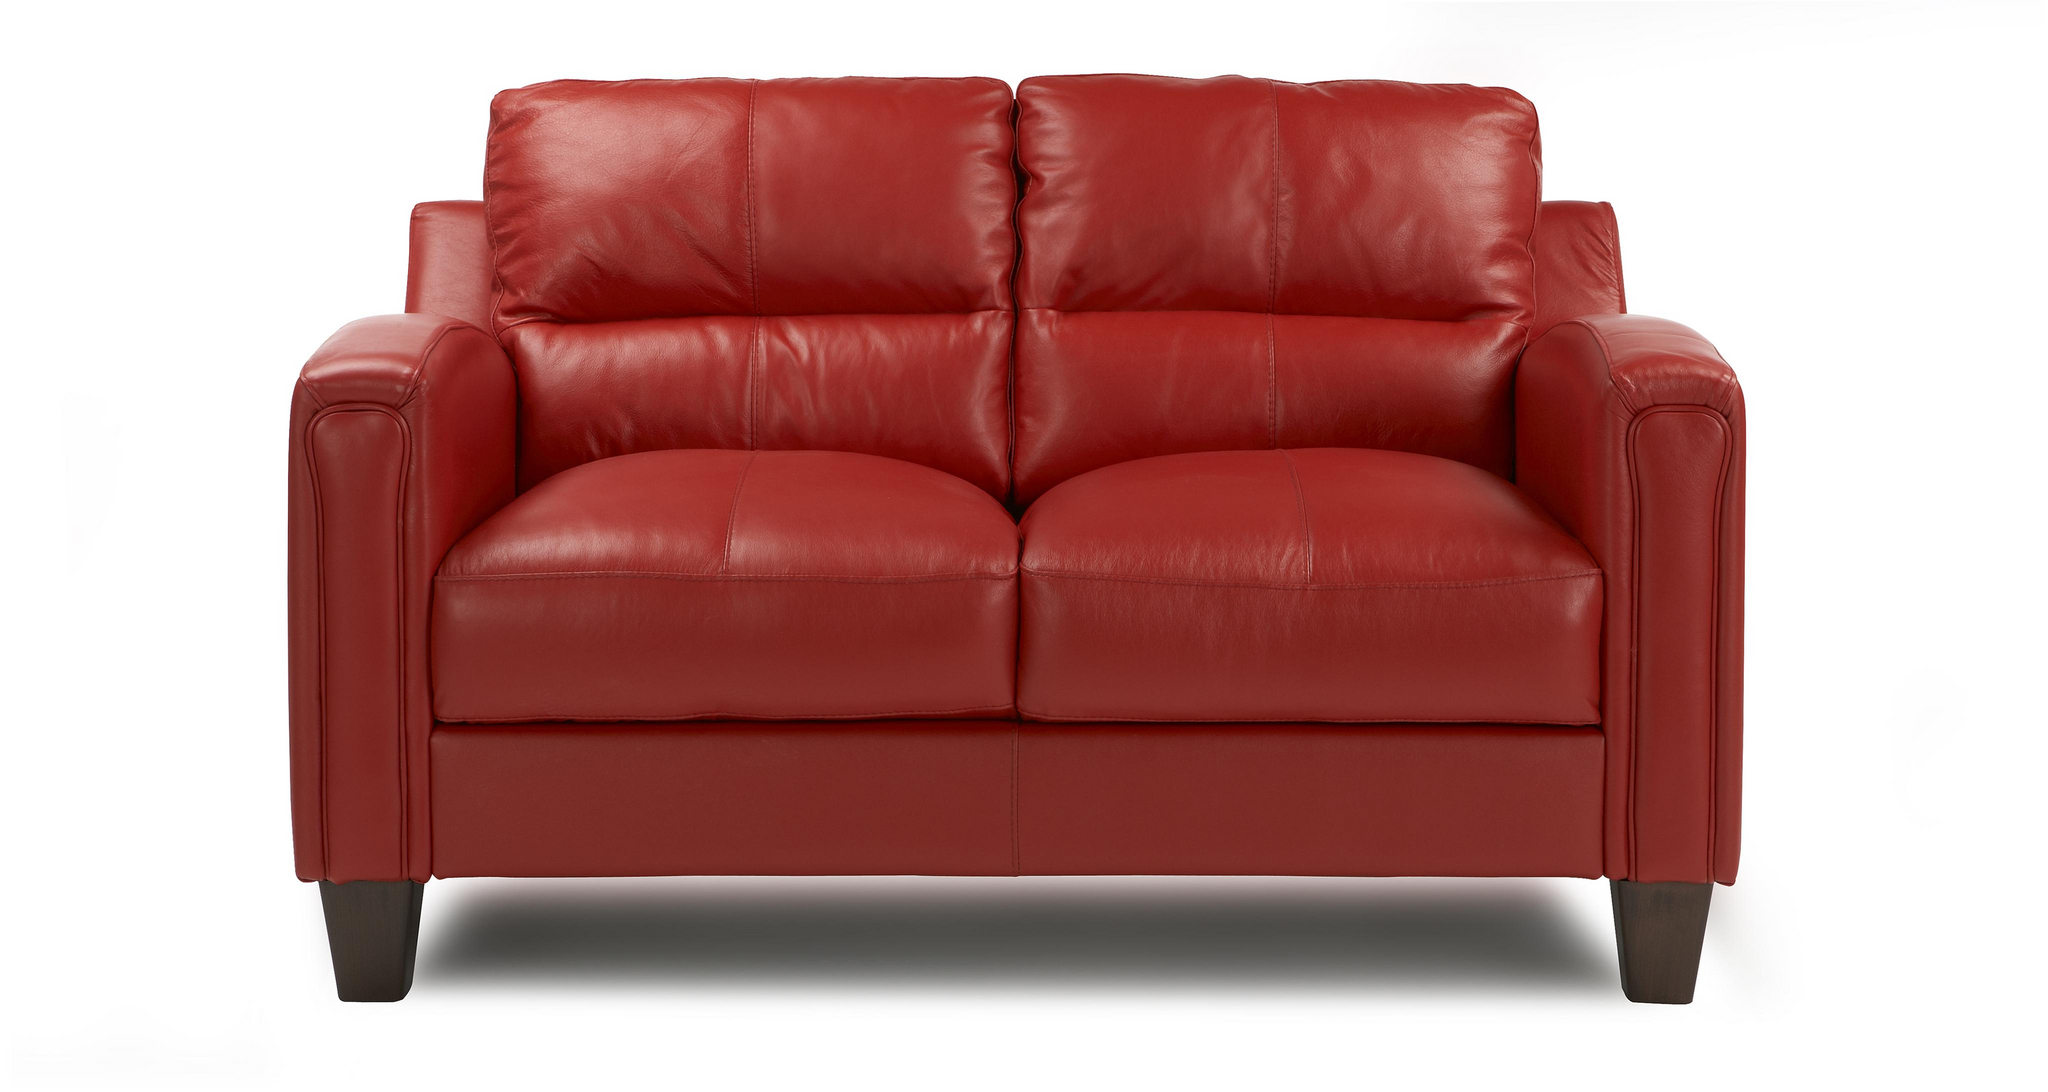 Sale On Sofas Sofas On Sale Ikea Sofa Ideas Interior Design